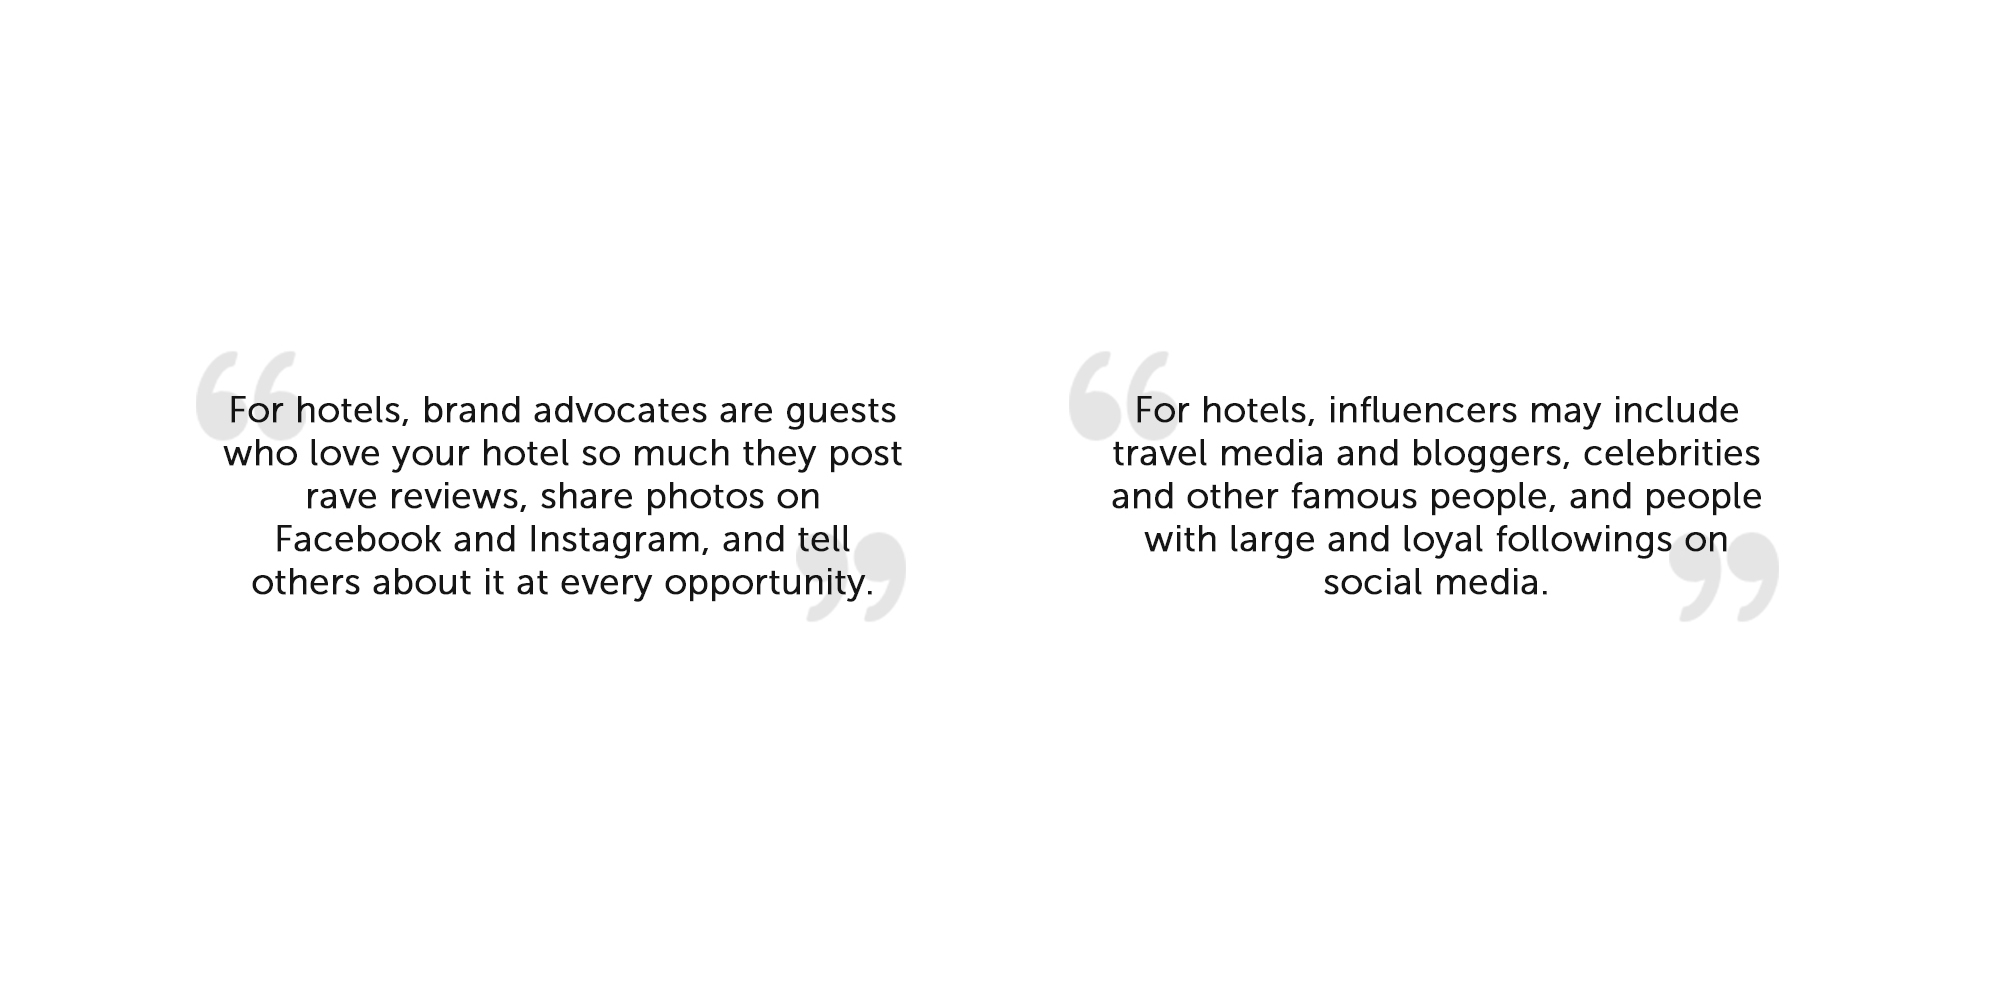 quotes form Adele Gutman about advocates and influencers